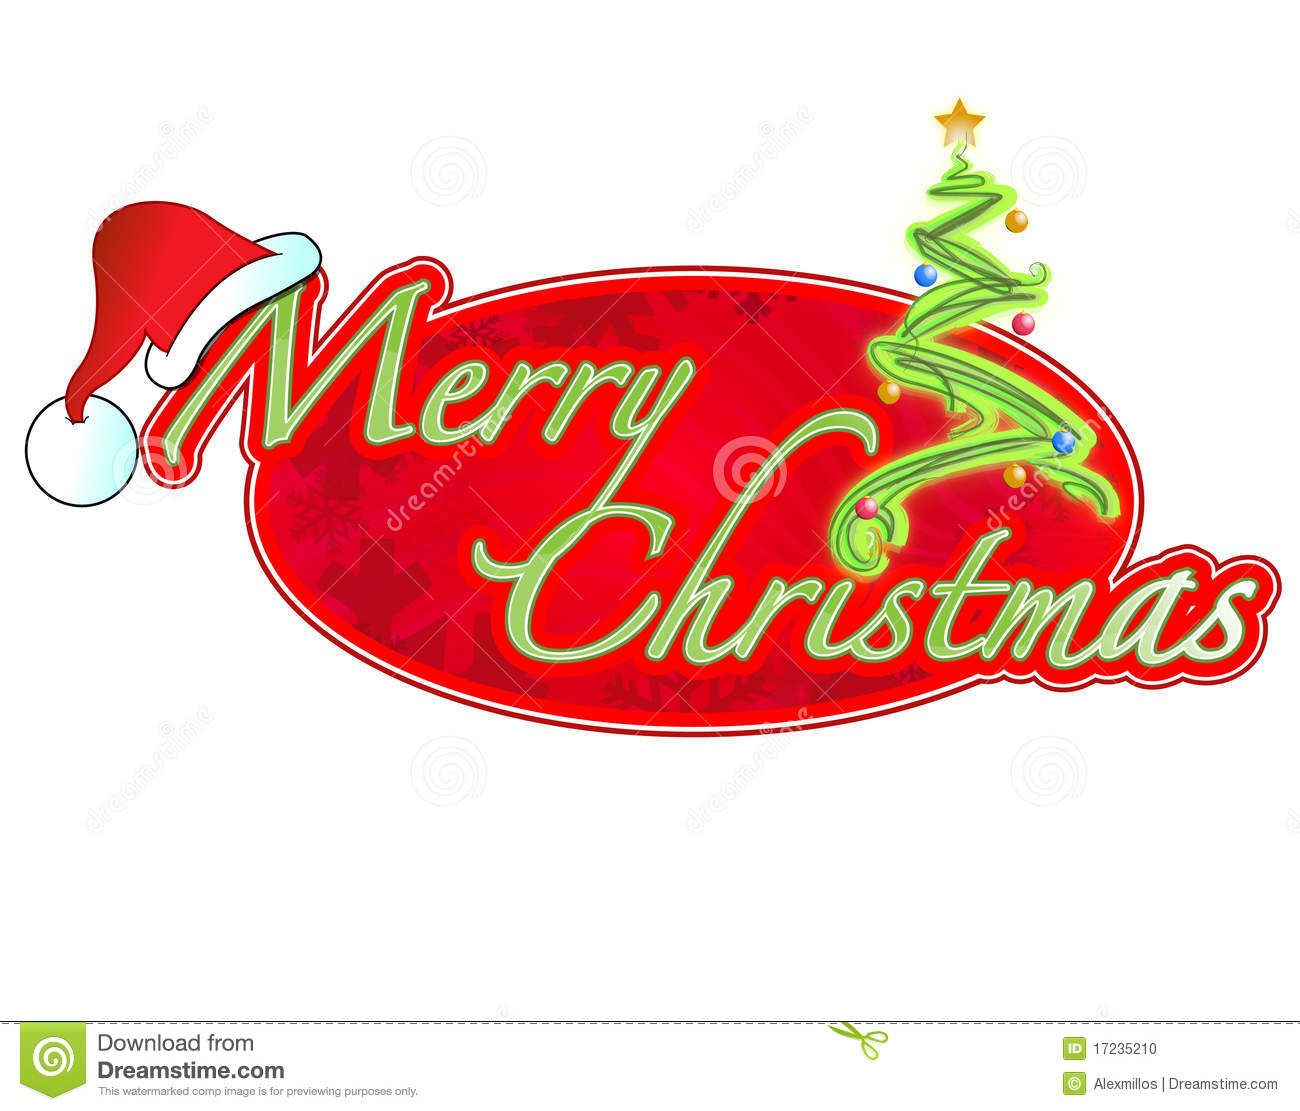 Christmas Stock Photo - Image: 17235210